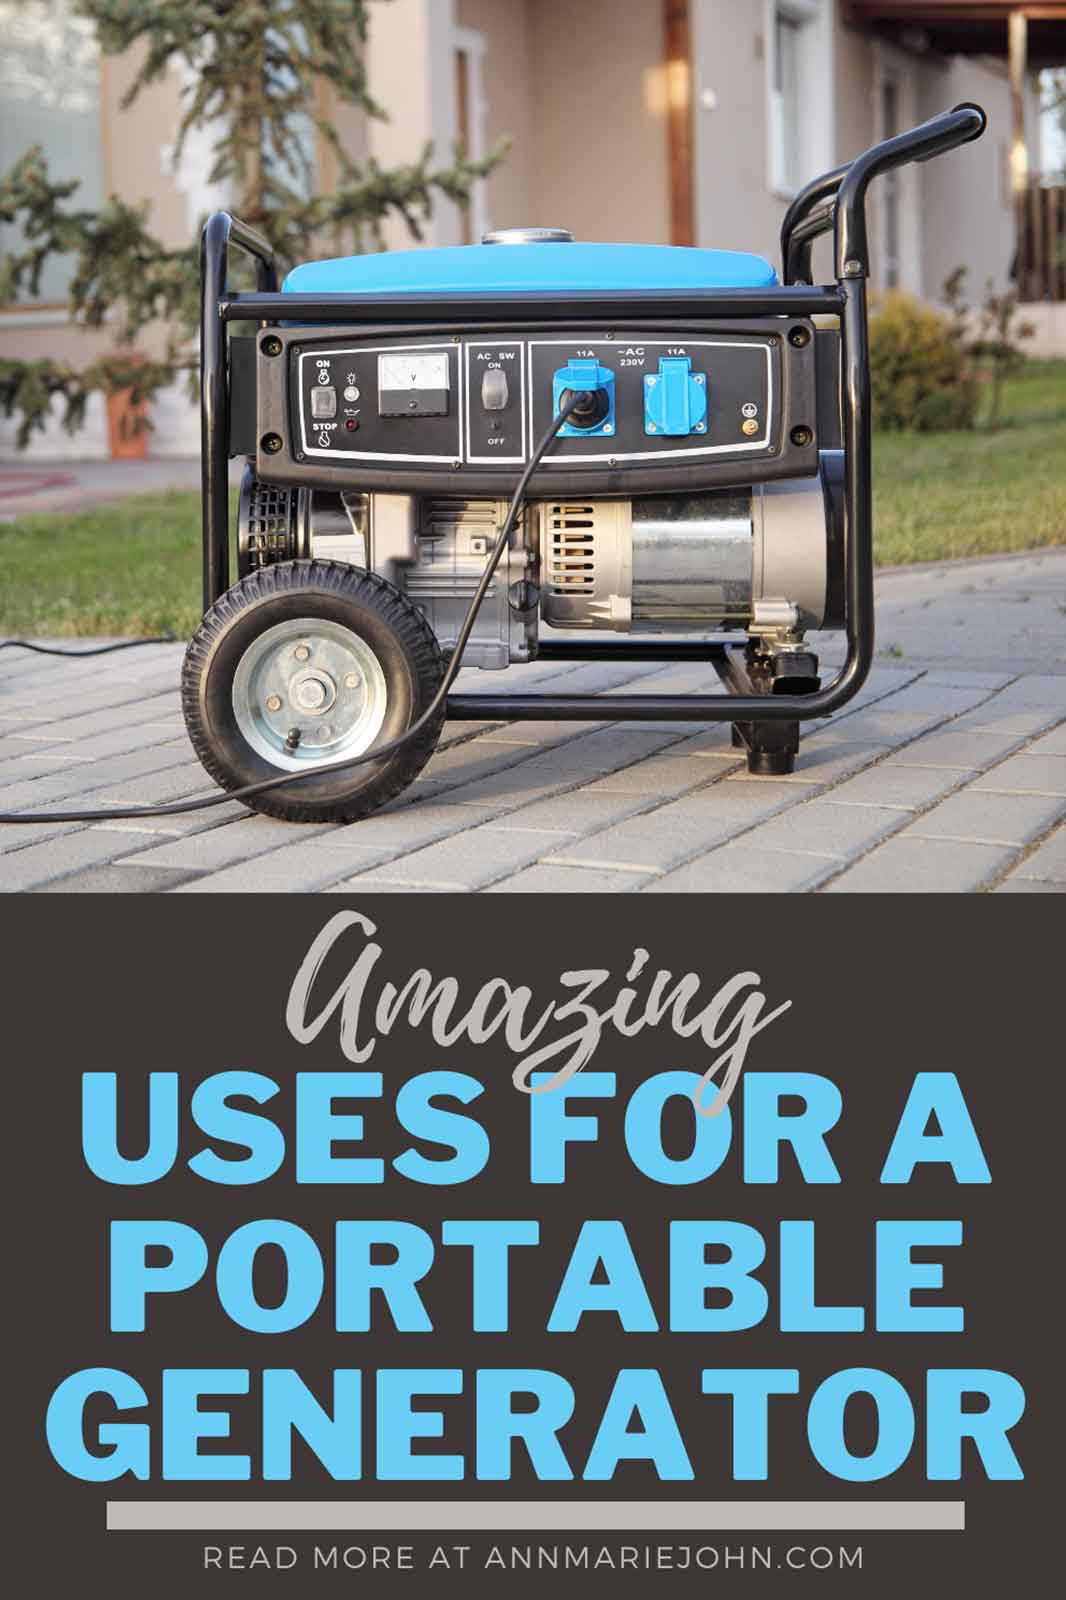 Amazing Uses for Portable Generators